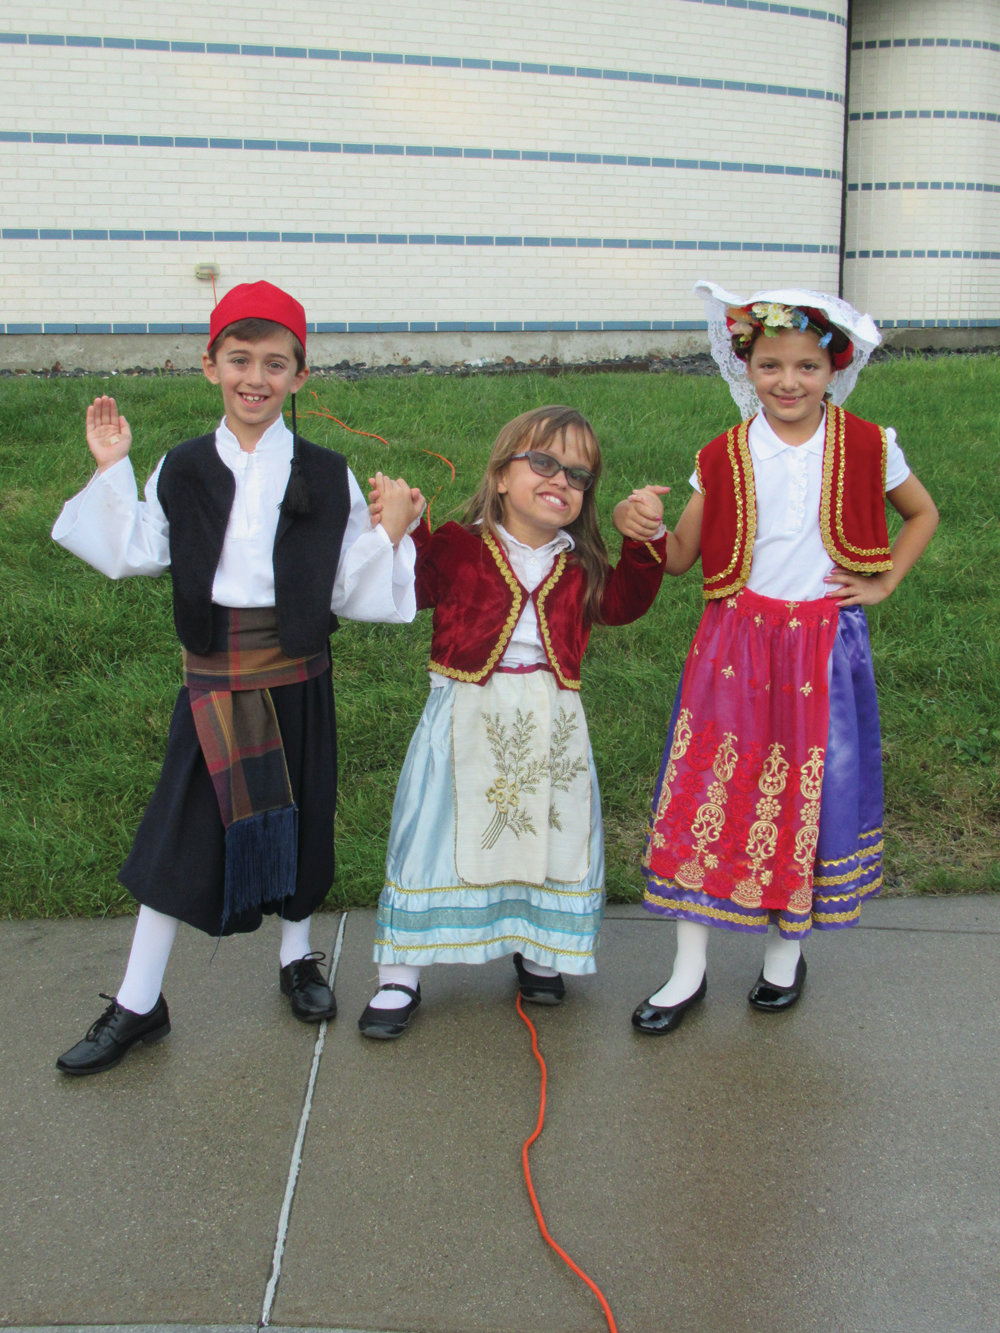 TALENTED TRIO: Among the younger members of the Church of the Annunciation's Odyssey Dance Troupe are, from left, Kosta Rougas, Sophia Nichols and Stella Andriotis. They will participate in five different performances during the three-day Cranston Greek Festival.